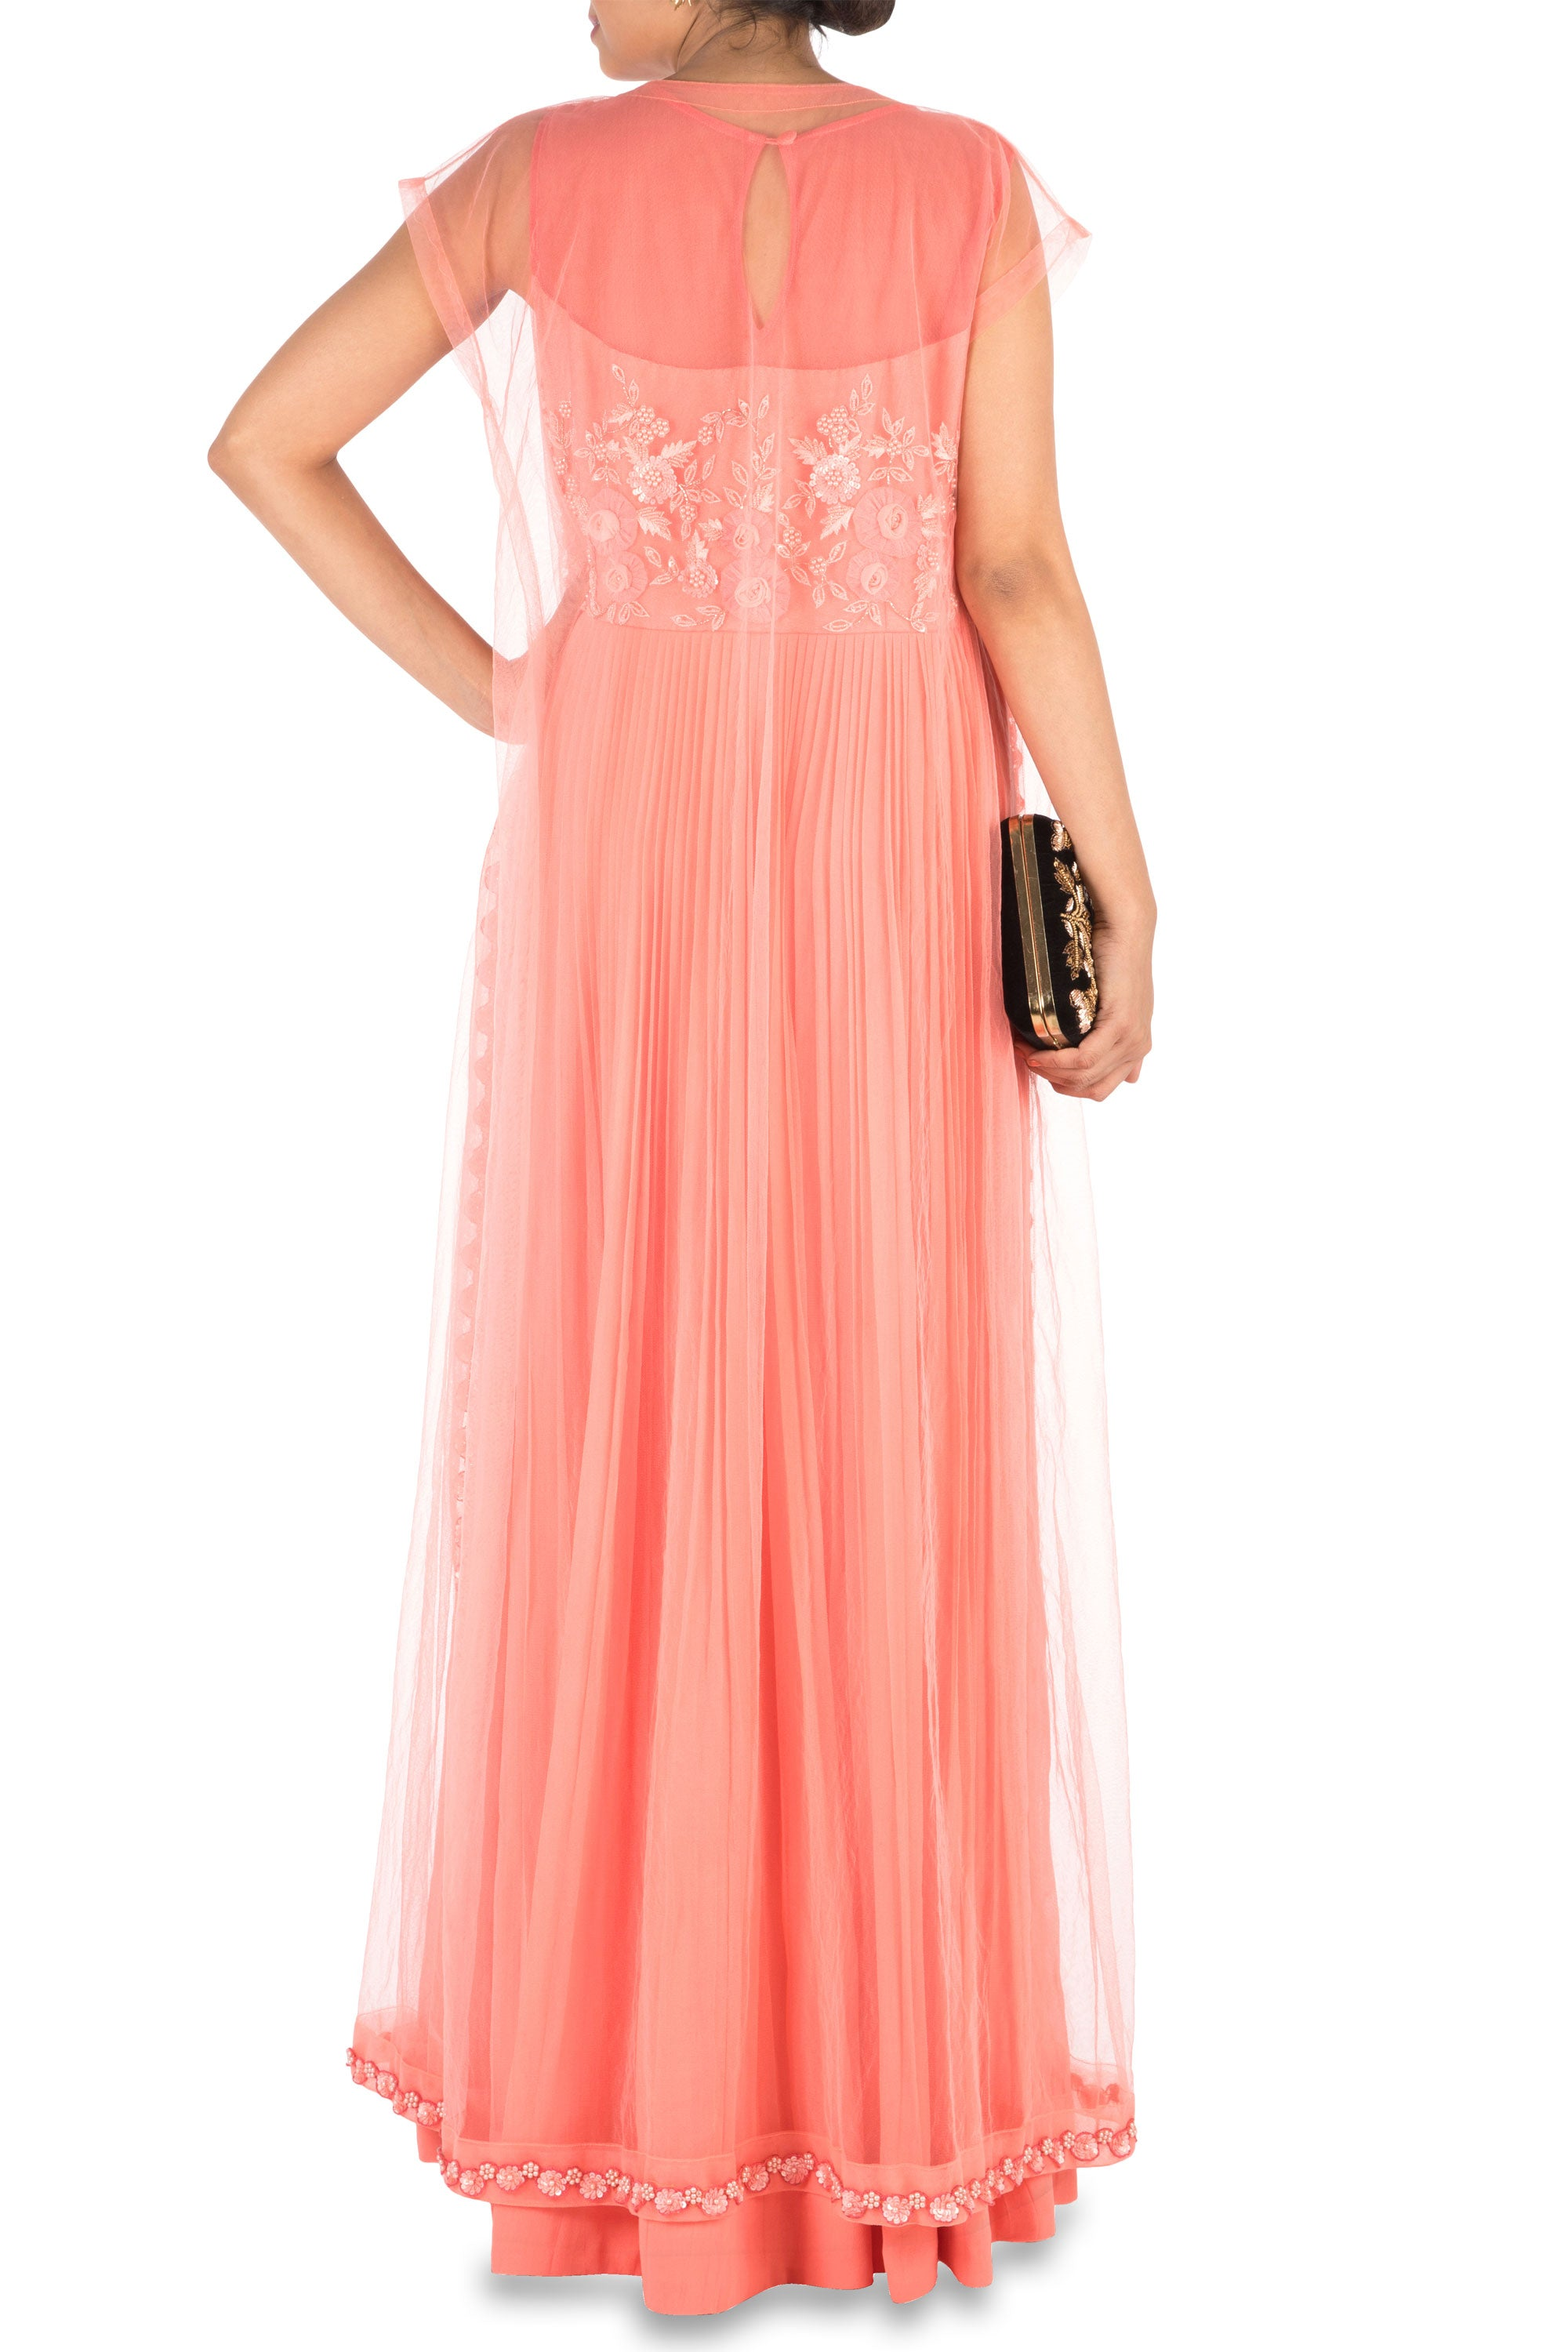 Hand Embroidered Coral Mirco Pleated Flare Gown With Jacket Back